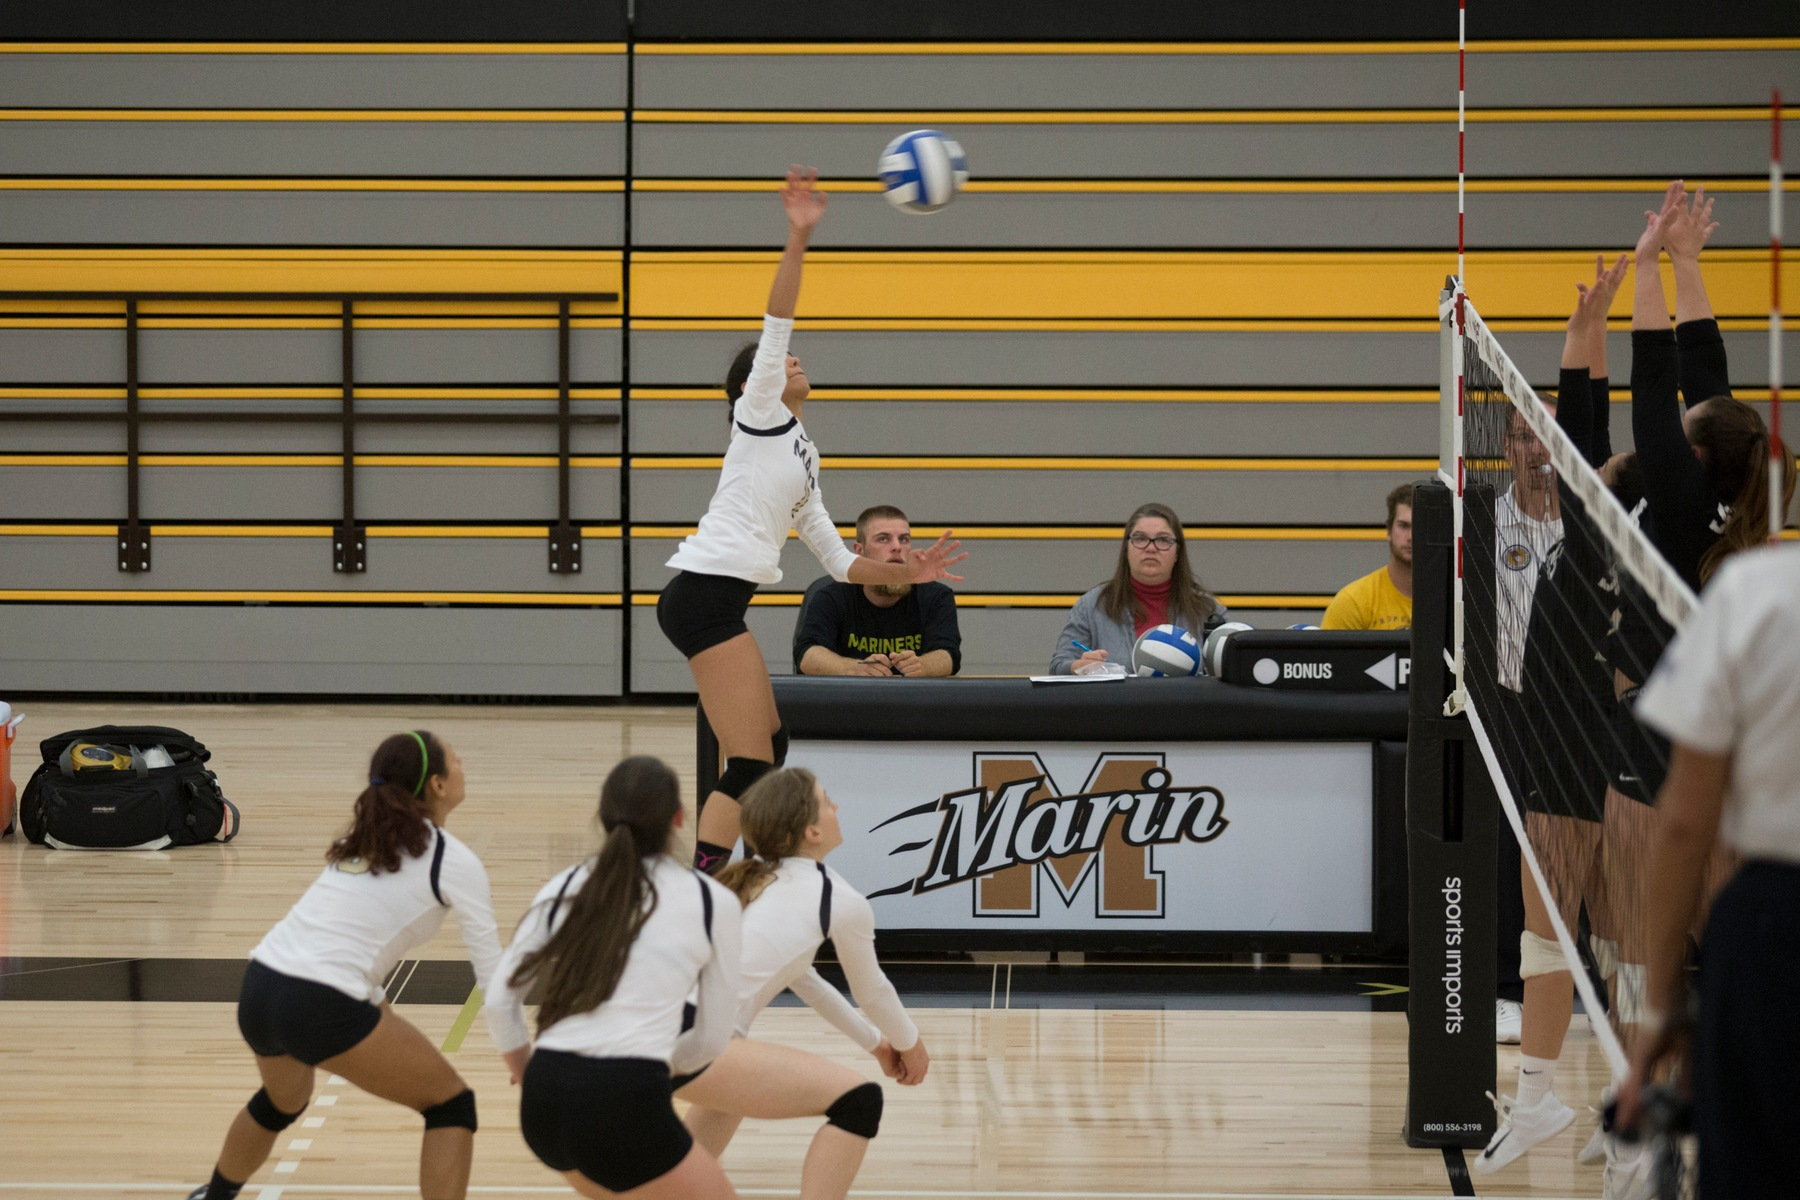 College of Marin Volleyball Opens 2018 Campaign With 3-0 Sweep of Shasta College